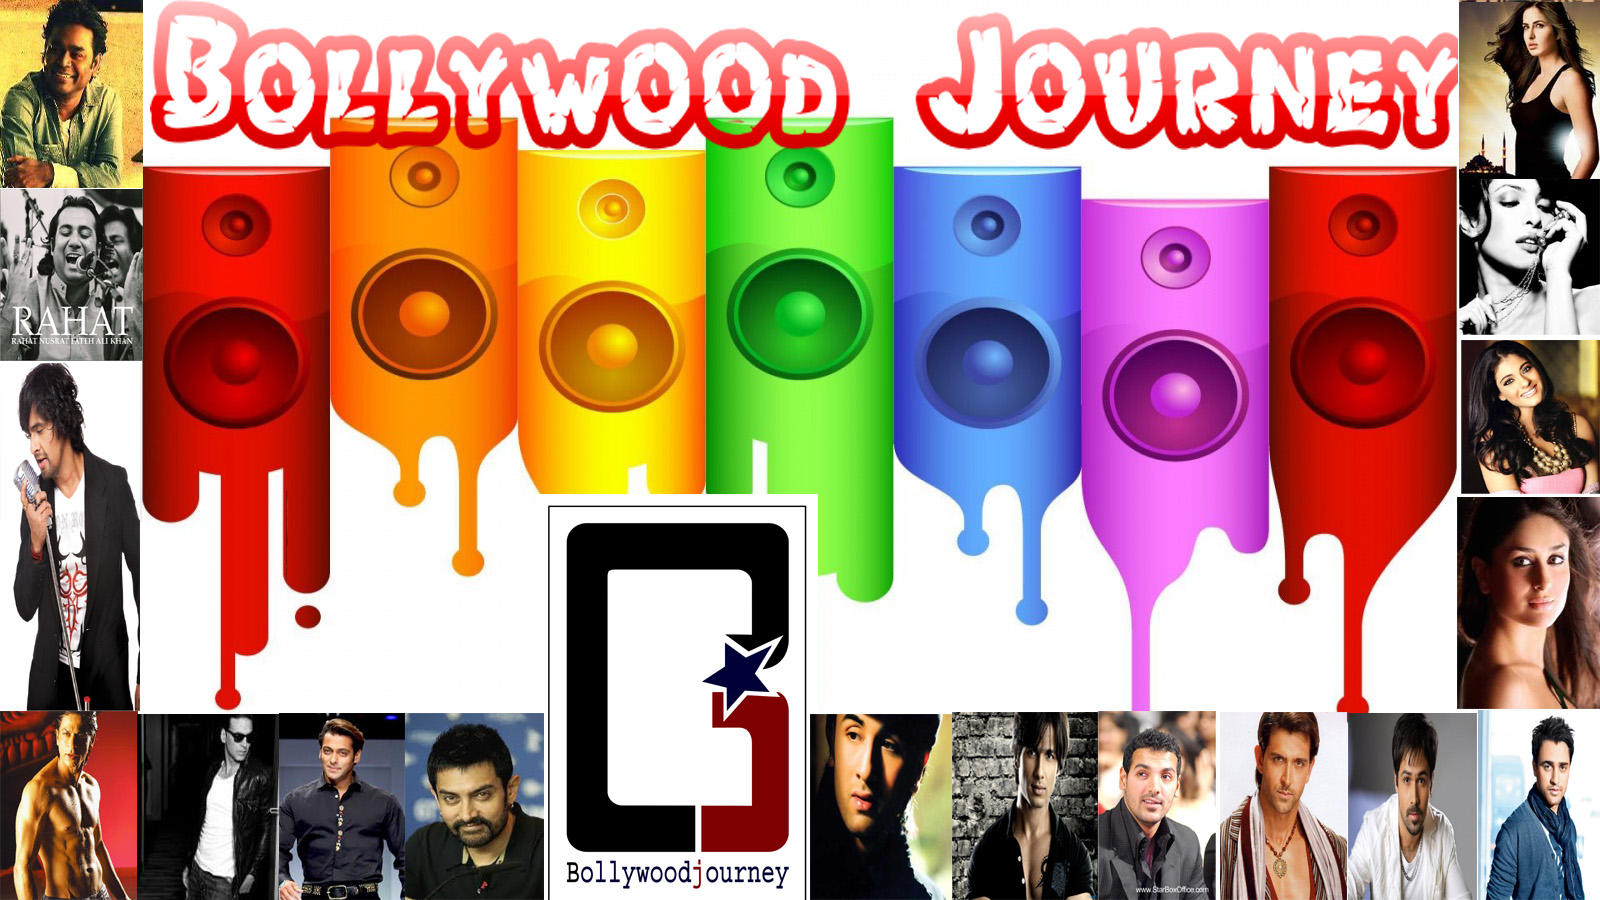 BOLLYWOOD JOURNEY